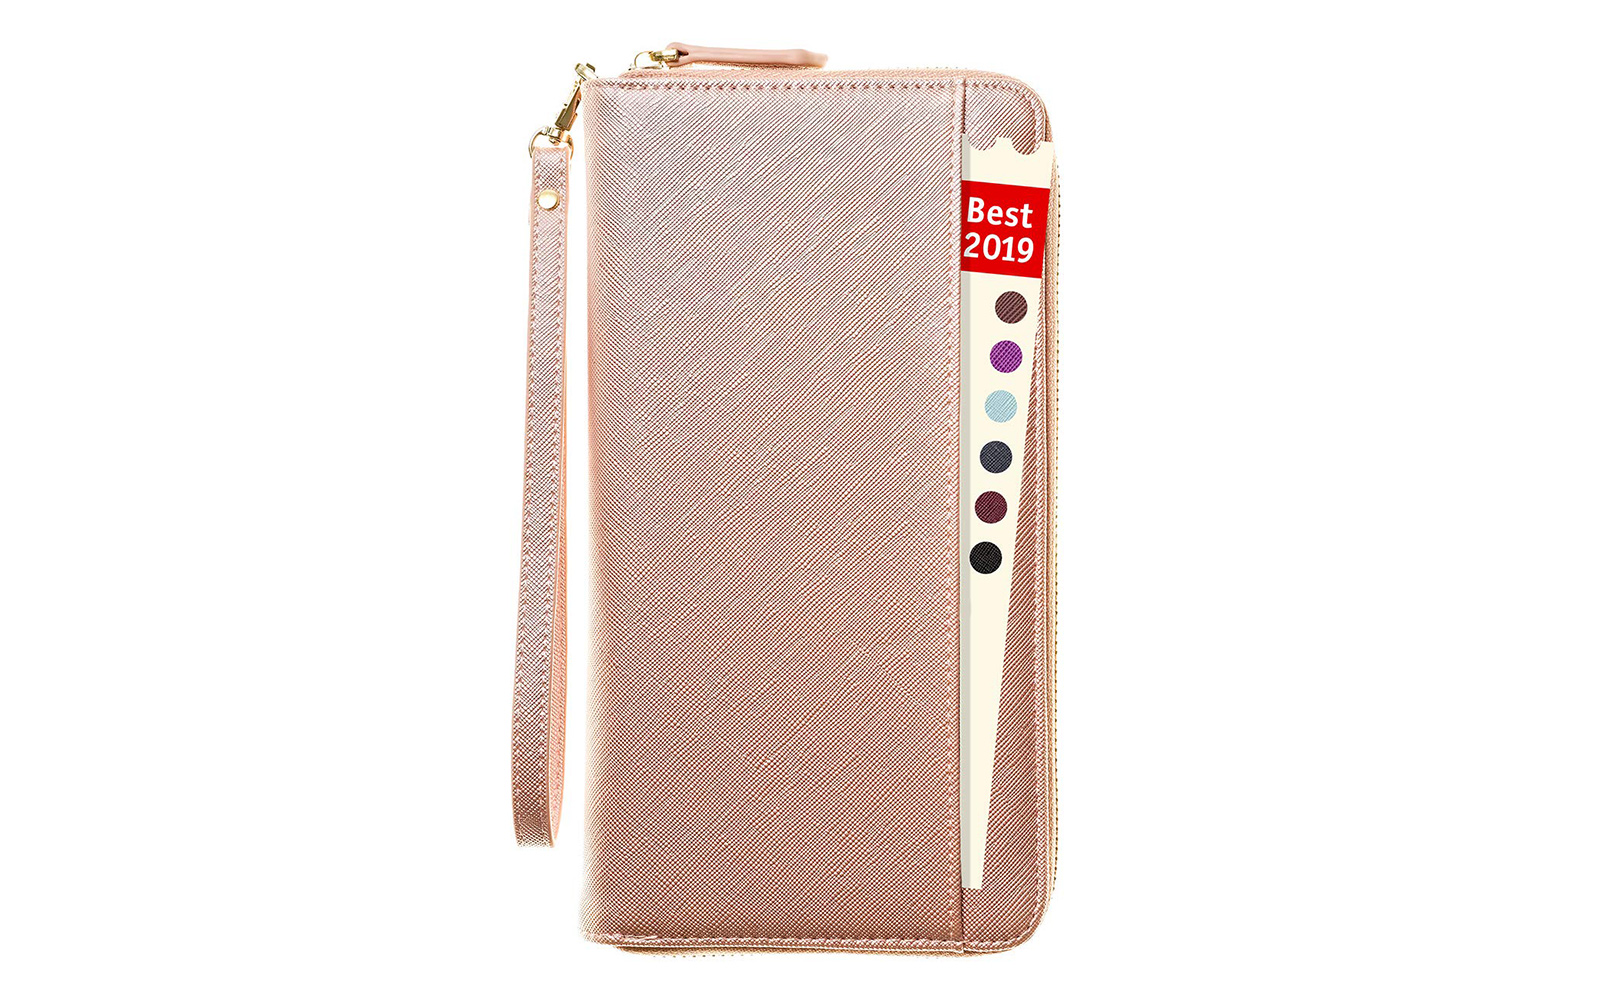 Apadi RFID Blocking Slim Zip Wallet